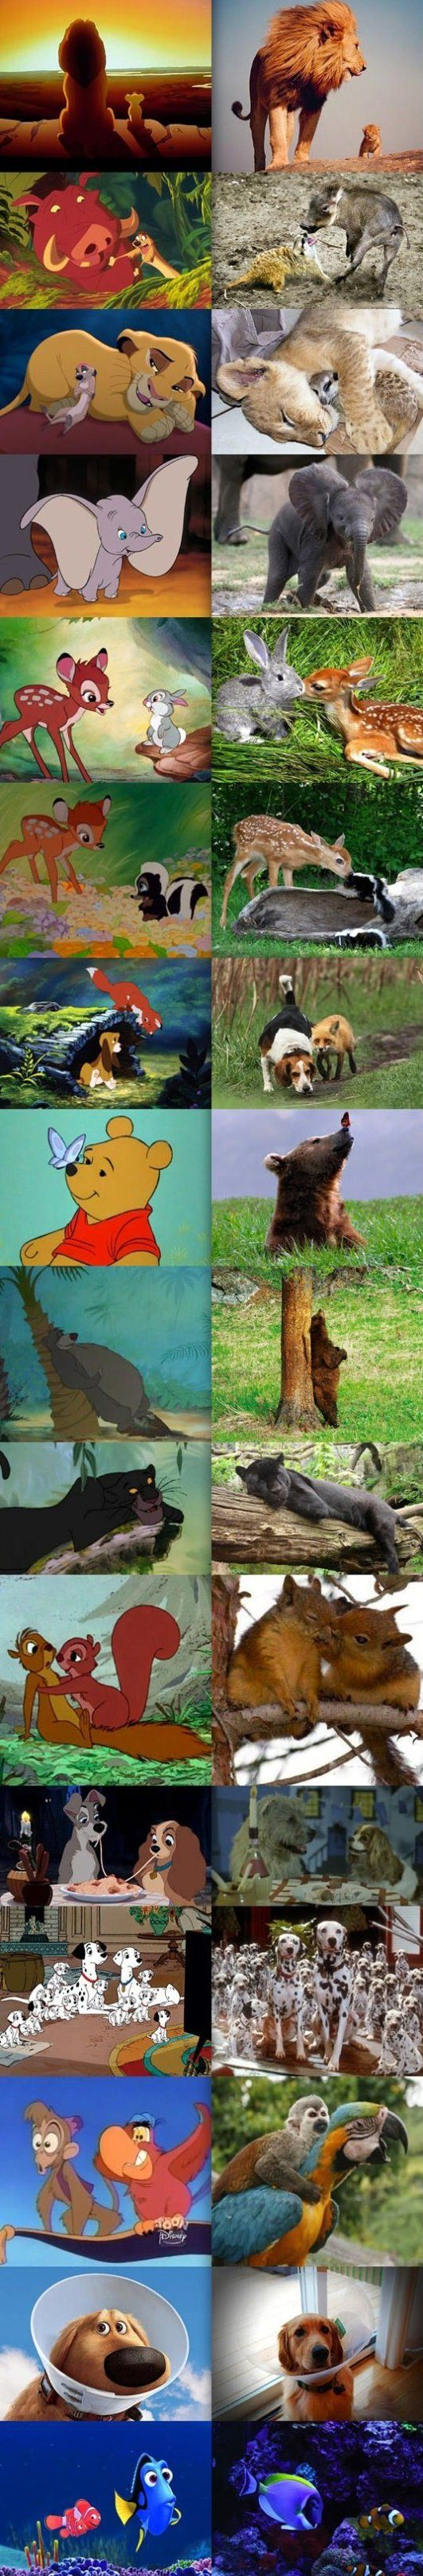 Disney animals in real life...This is just really cute ^_^